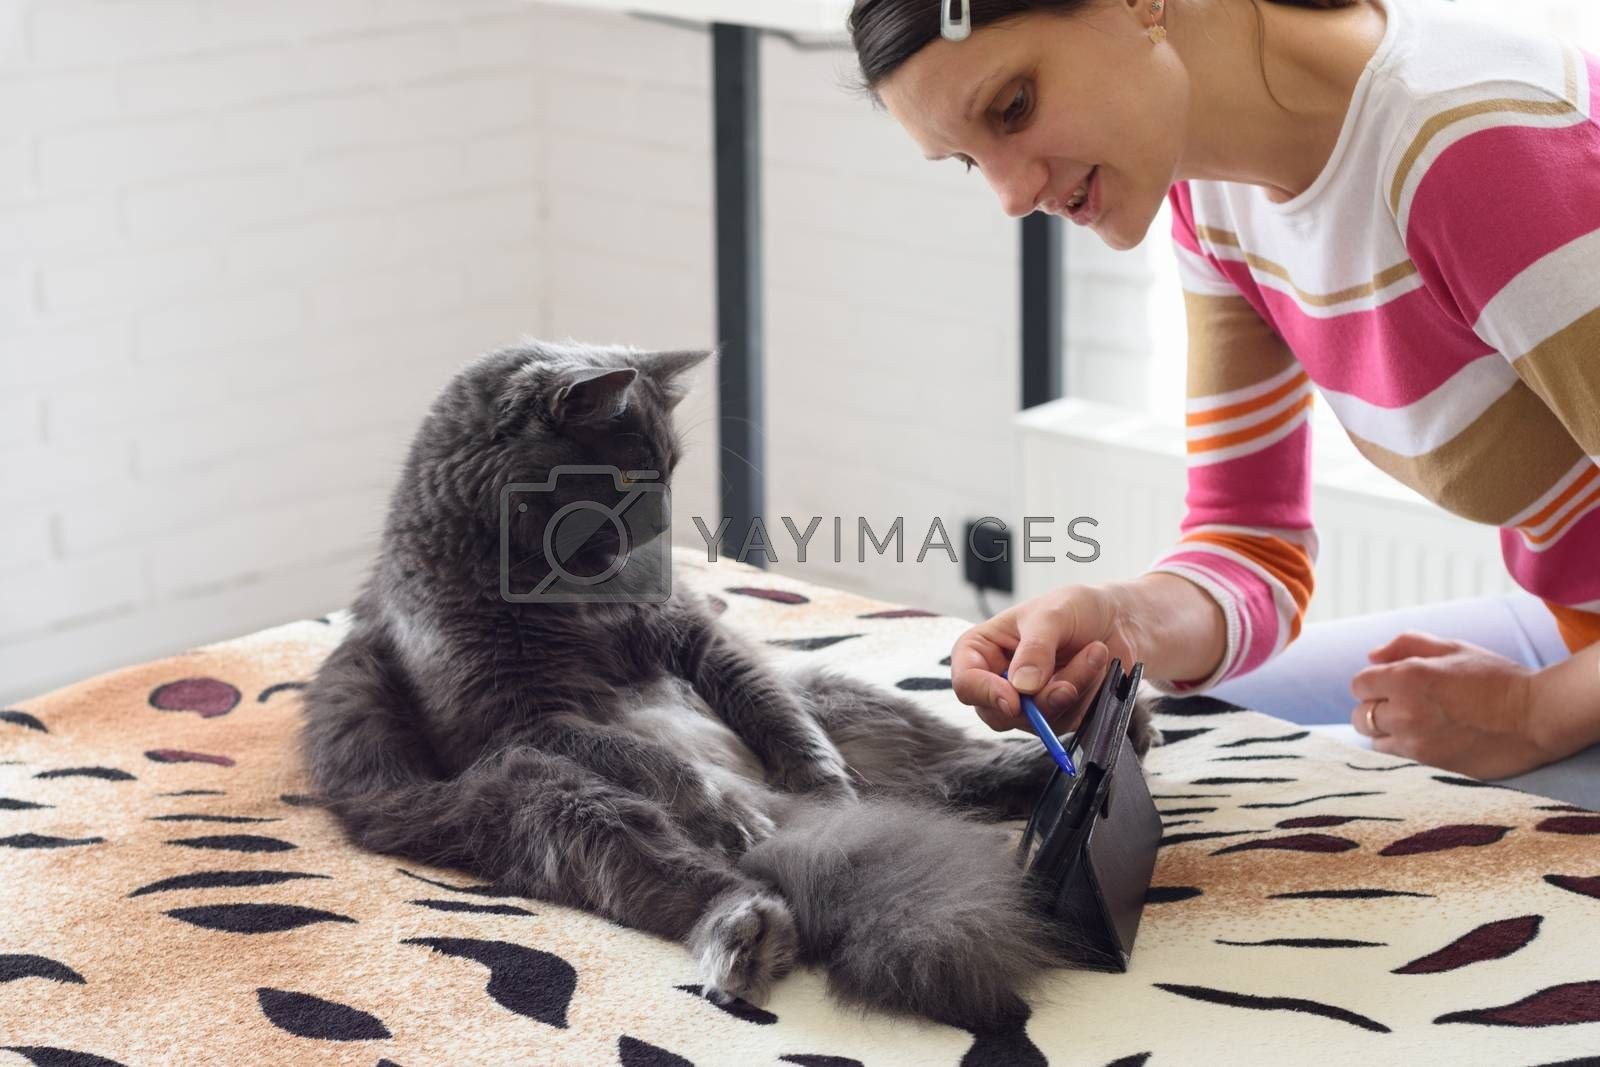 The girl put a tablet computer in front of the cat and is trying to teach him